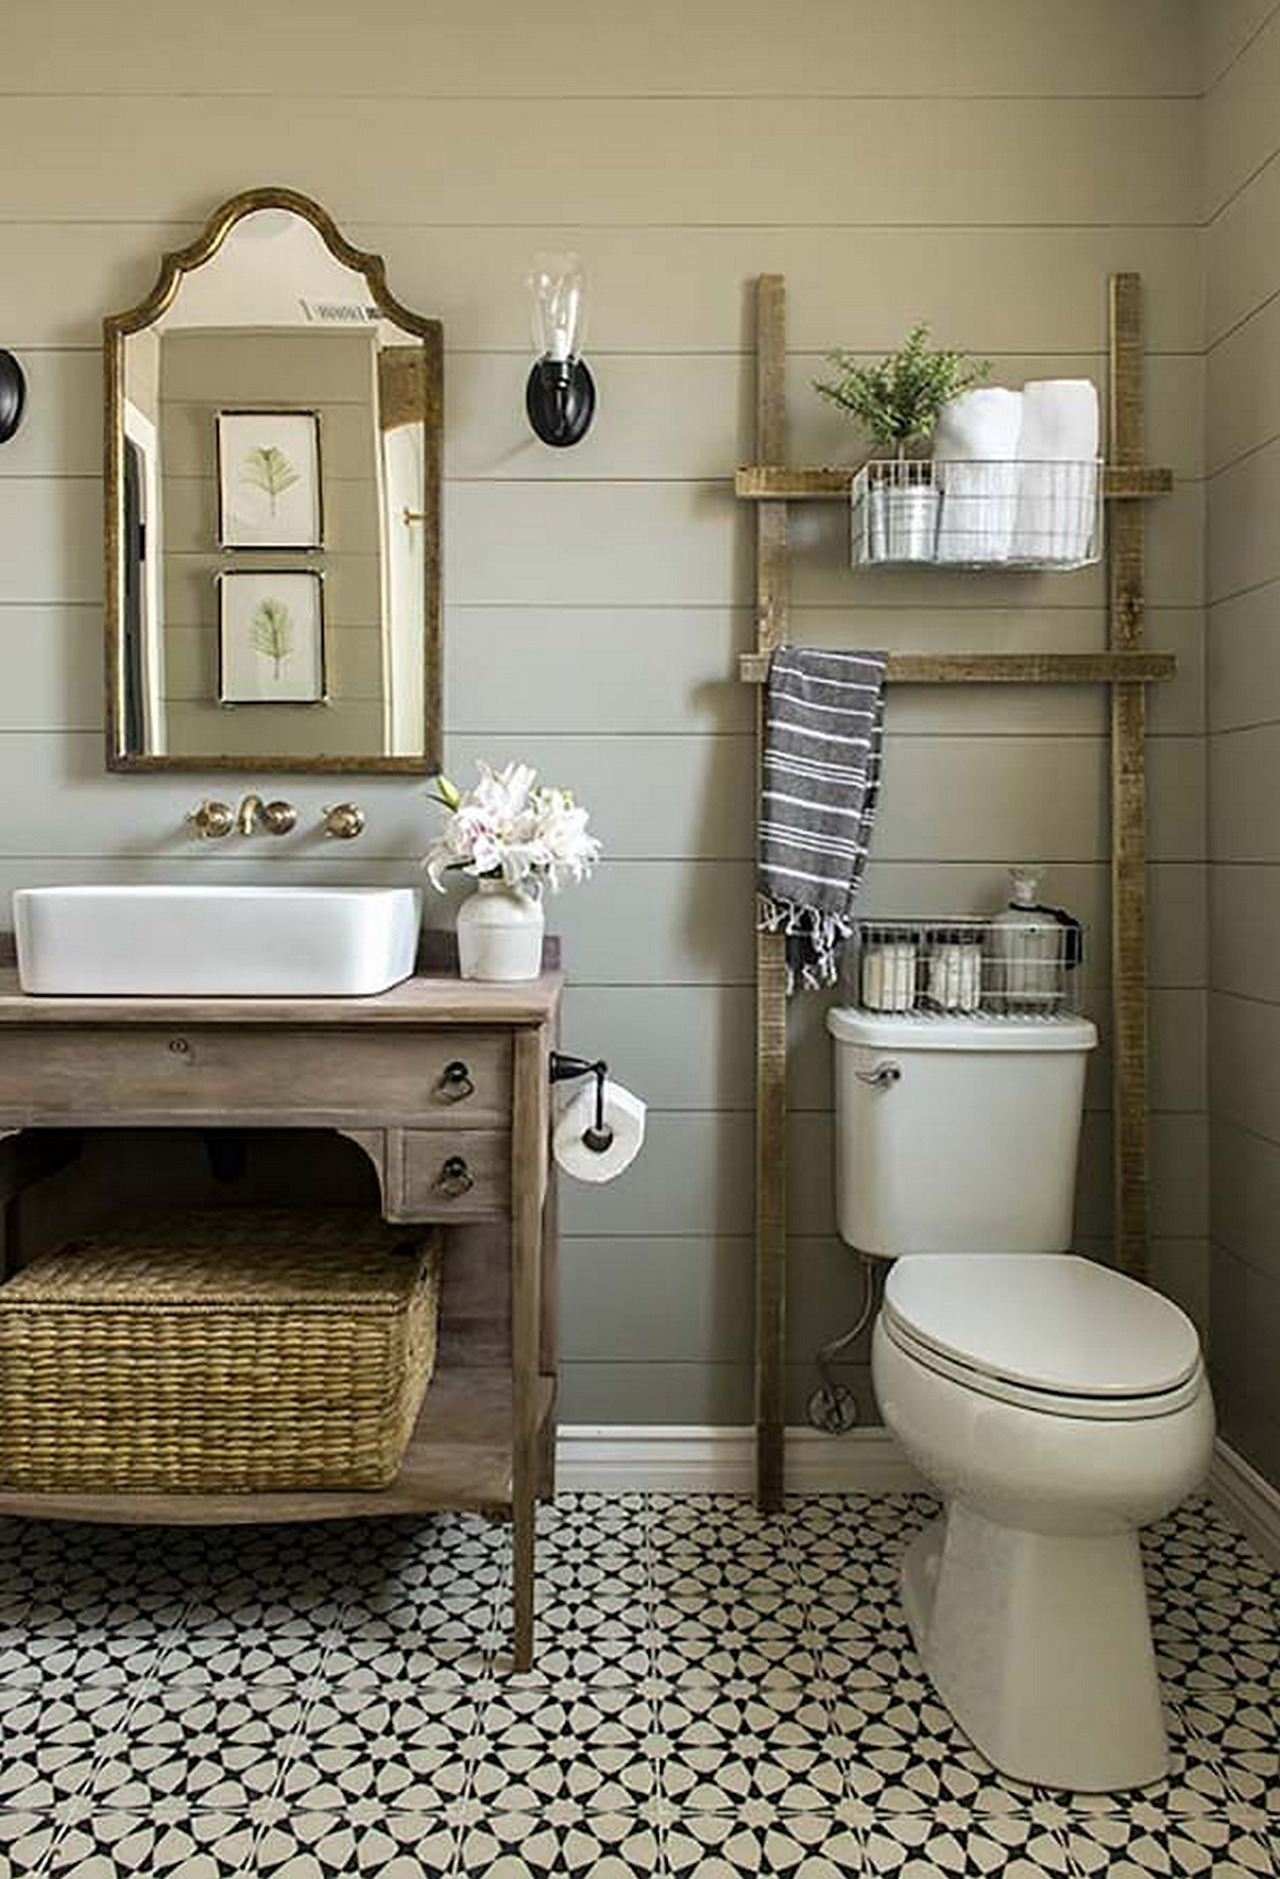 Picture for Bathrooms Decorations Beautiful 25 Best Bathroom Decor Ideas and Designs that are Trendy In 2020